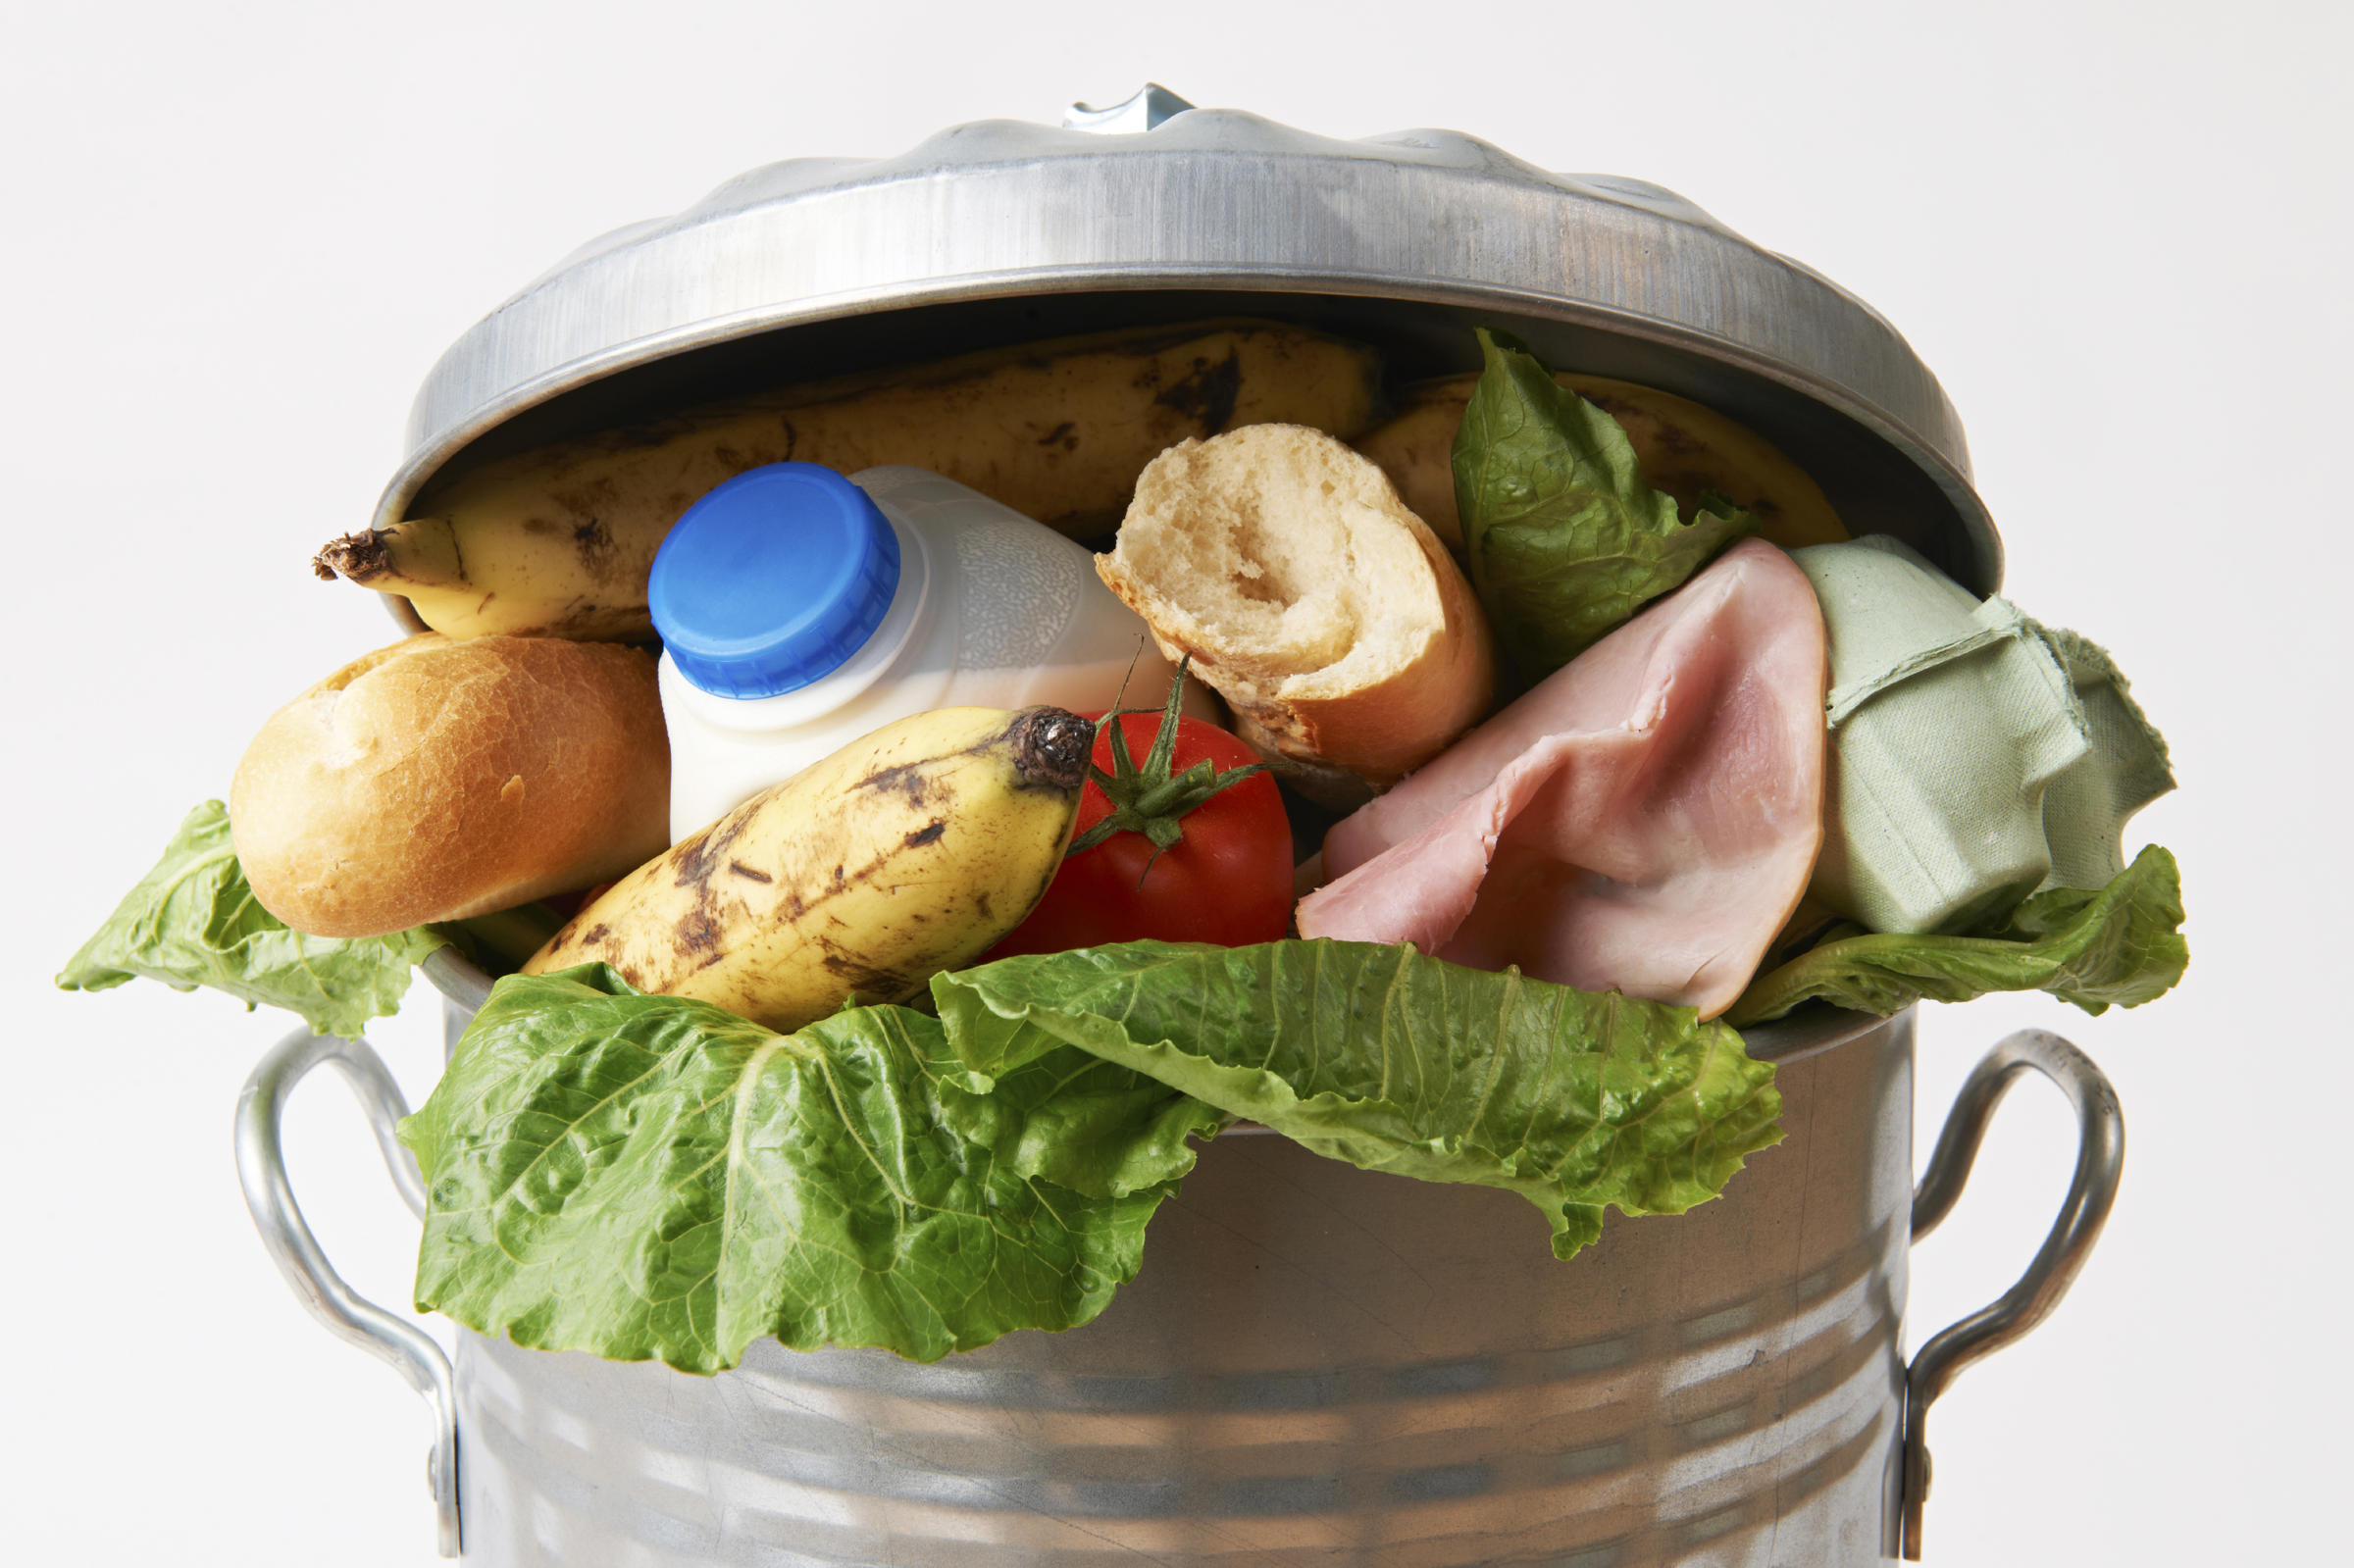 Finding Real-Life Solutions to Growing Food Waste Epidemic:Estimated 30-40% of Food Goes into the Garbage